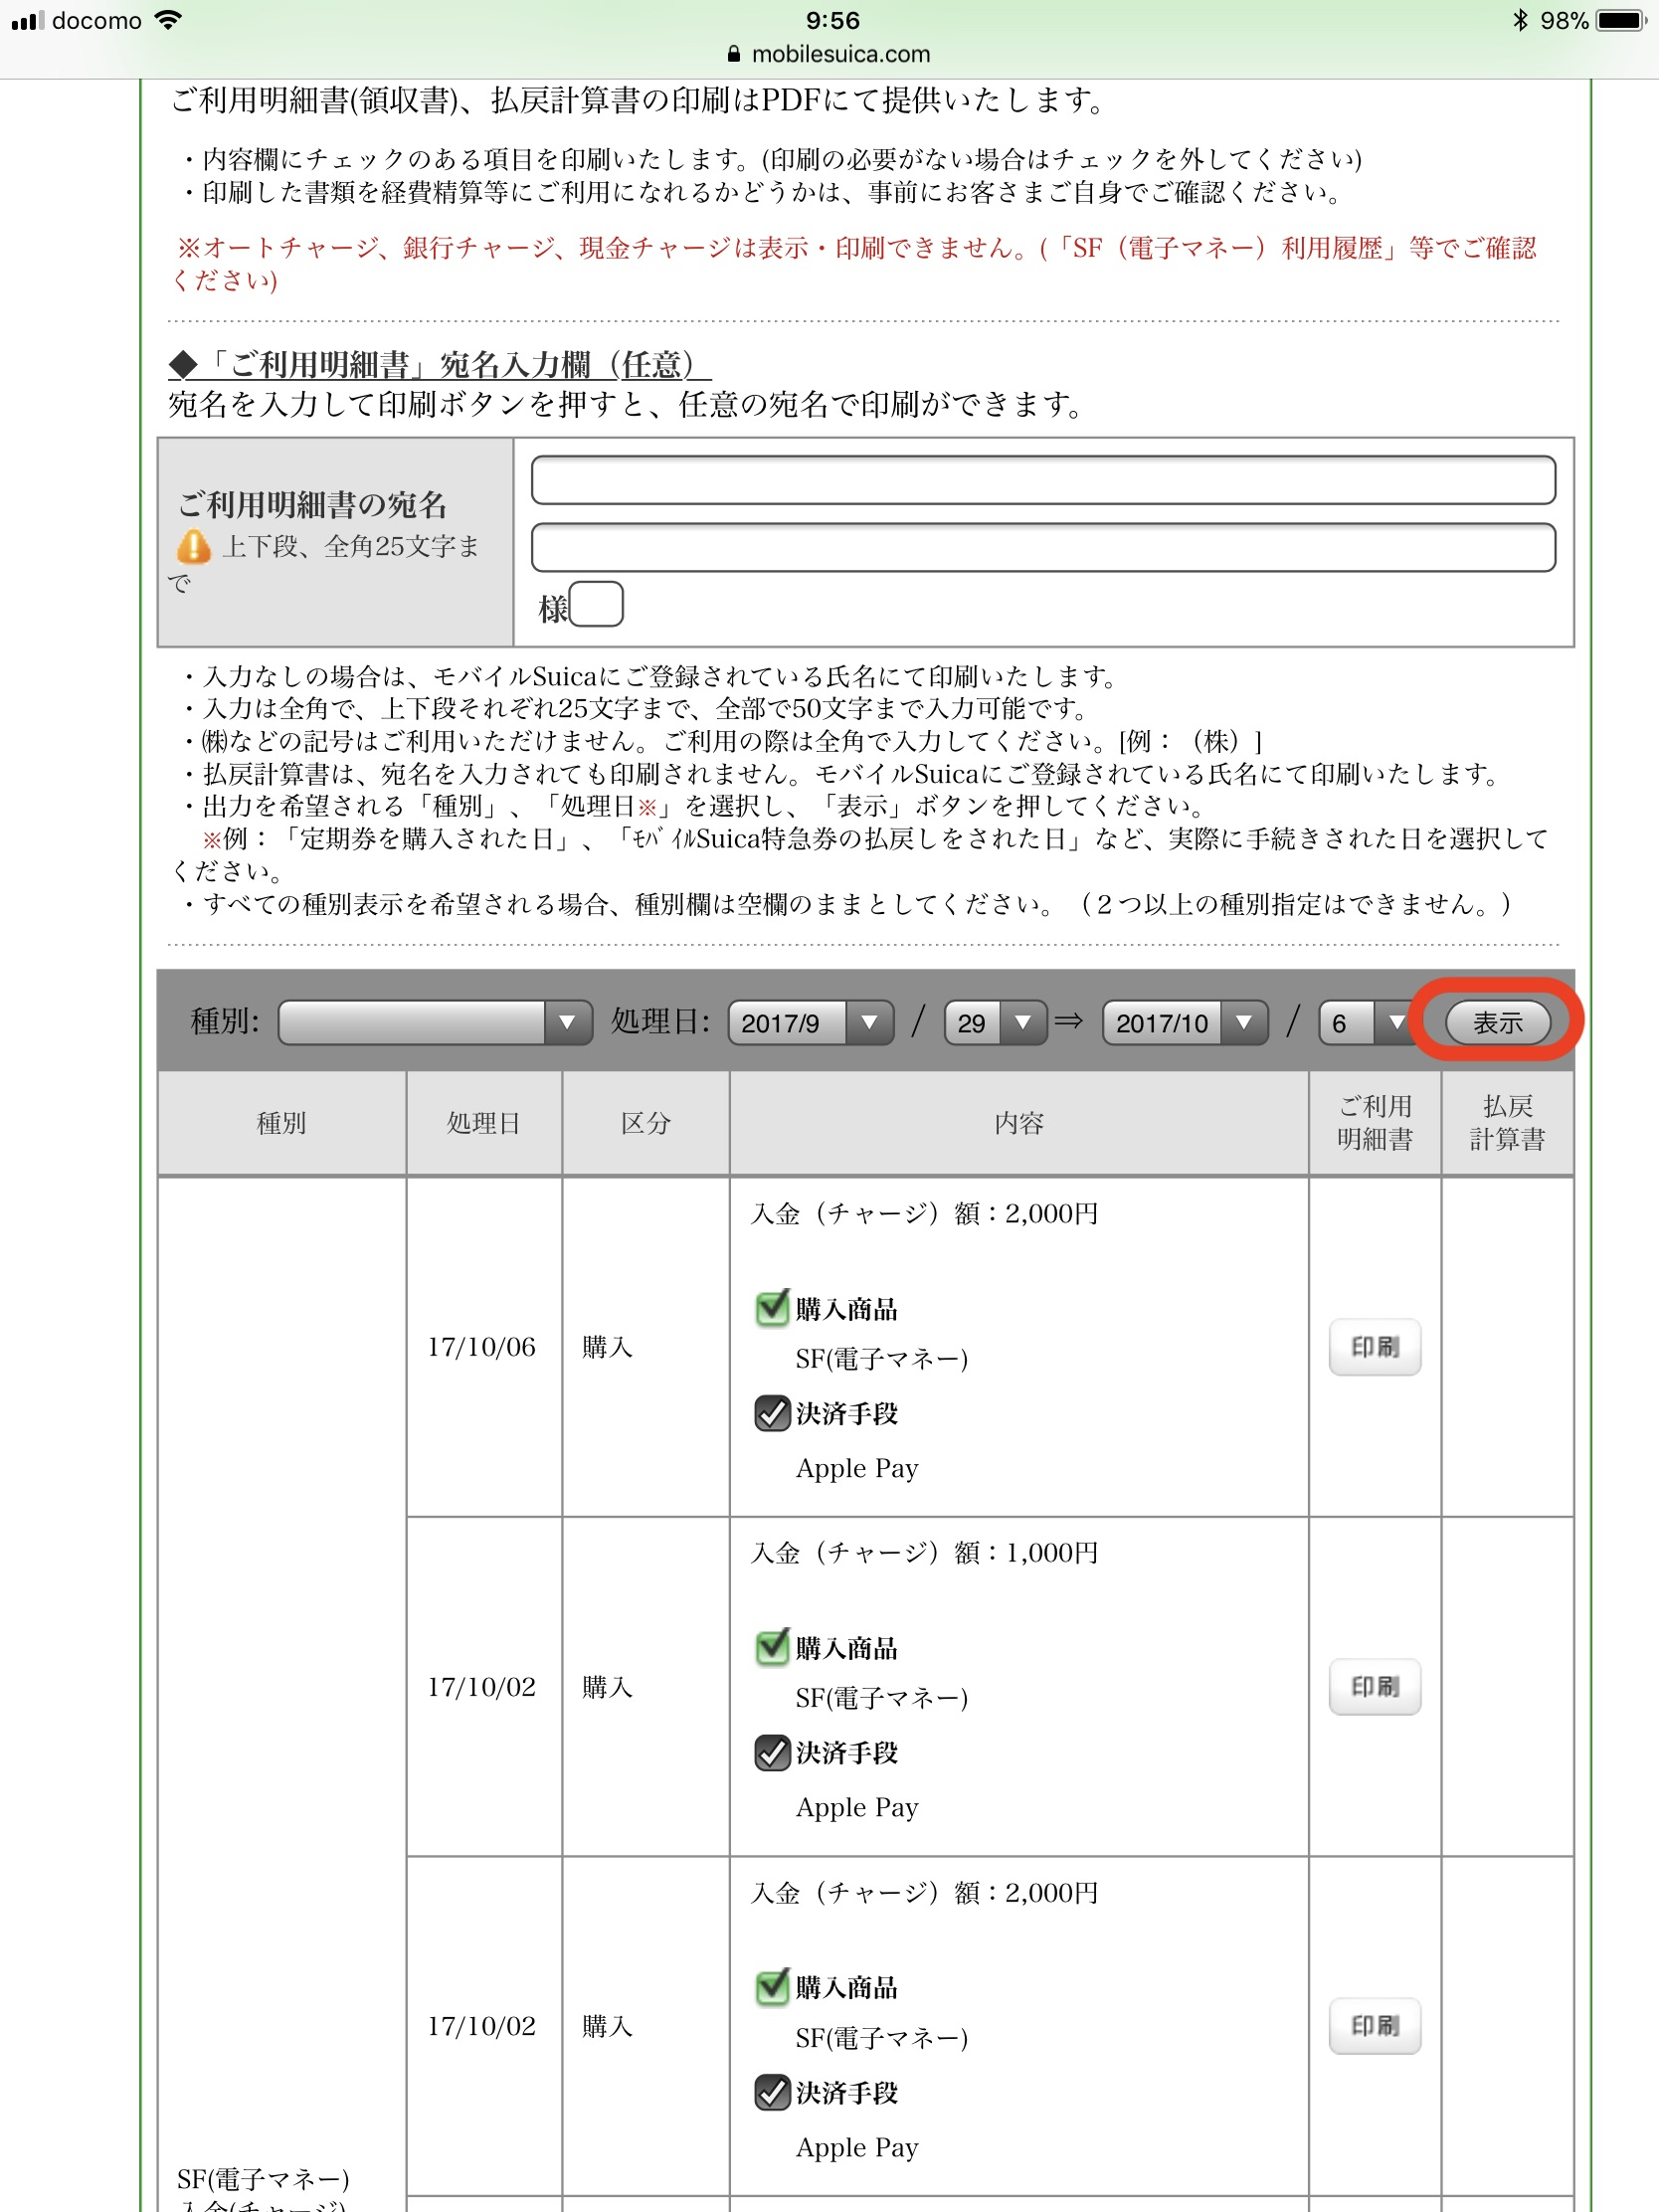 Paper Receipts For Apple Pay Suica Ata Distance